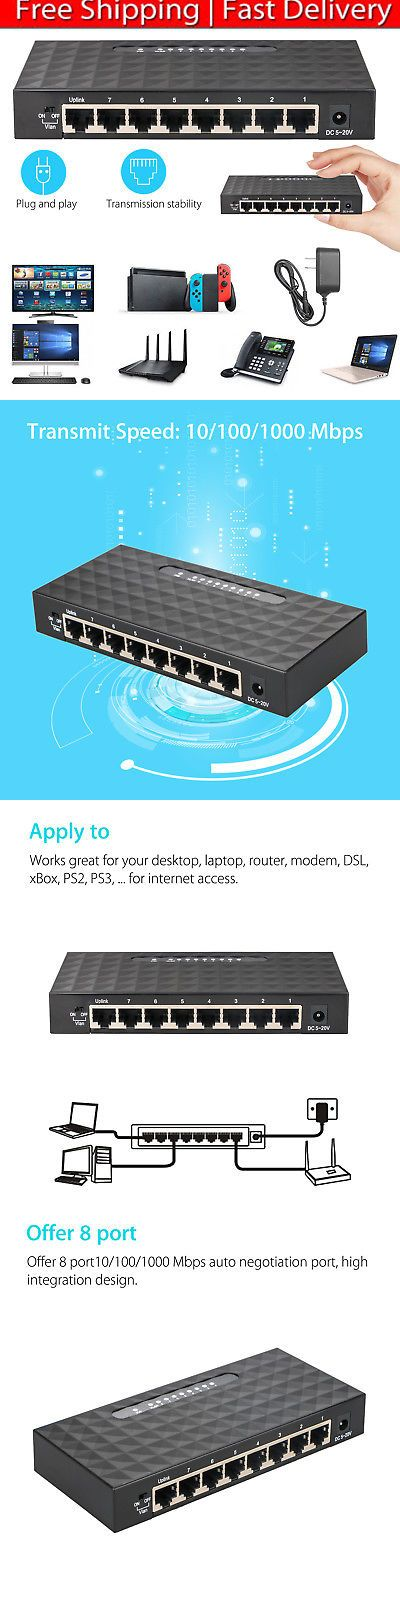 Switches And Hubs 182091 8 Port 10 100 1000 Mbps Gigabit Ethernet Desktop Switch Lan Hub Network Adapter Buy It Now Only 2 Desktop Metal Switches Adapter